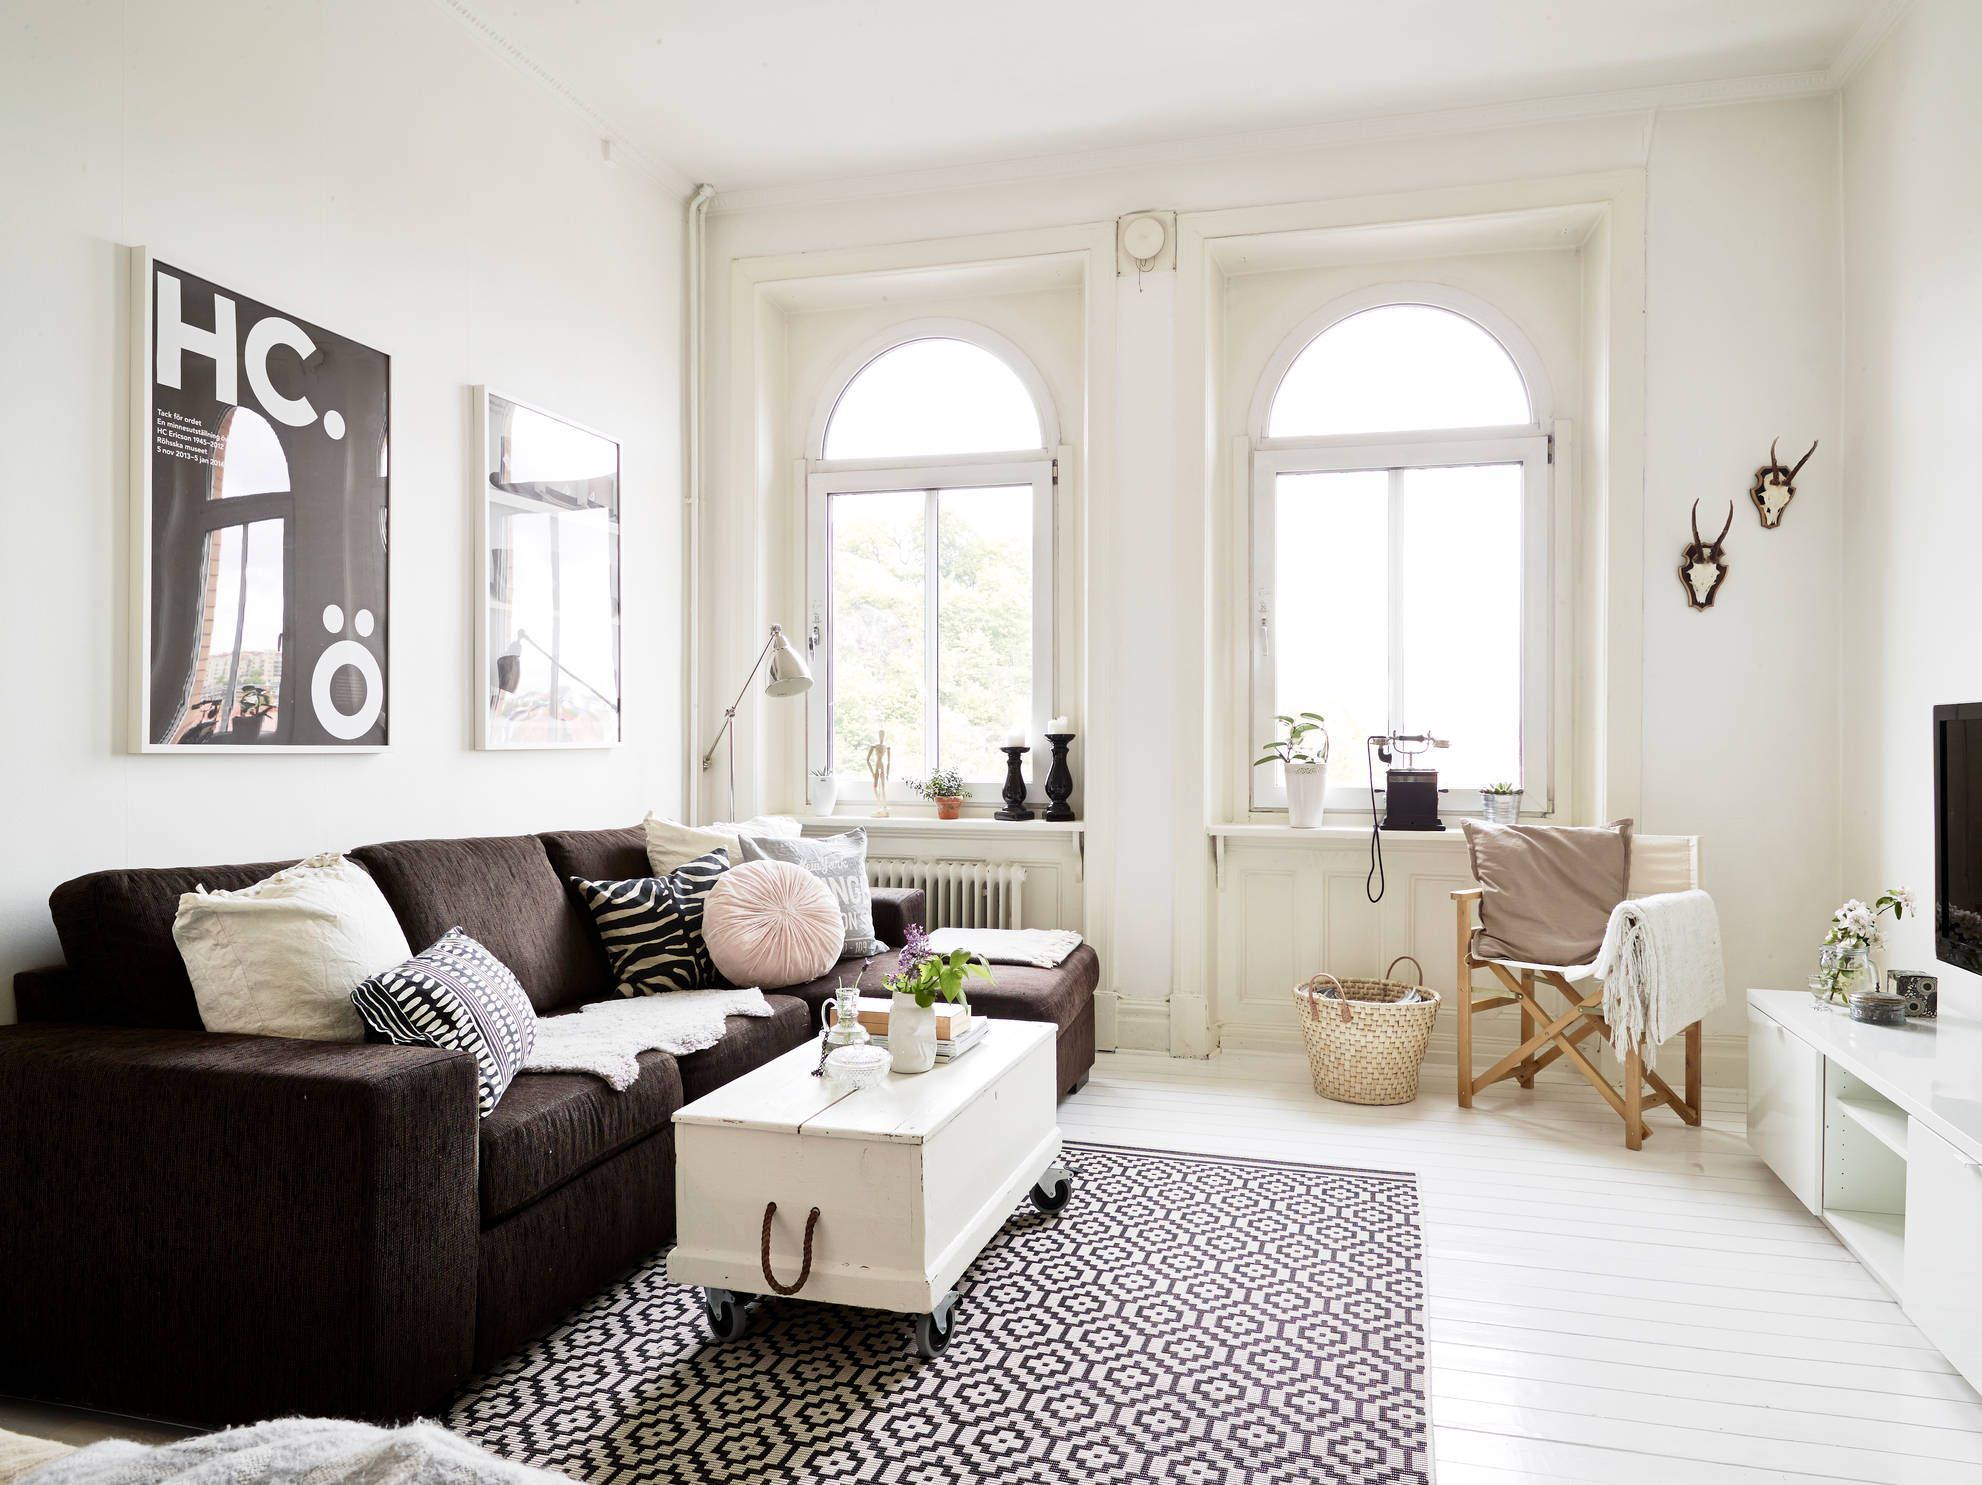 Droom appartement in Göteborg - Blogs - ShowHome.nl | ▷LIVING ROOM ...